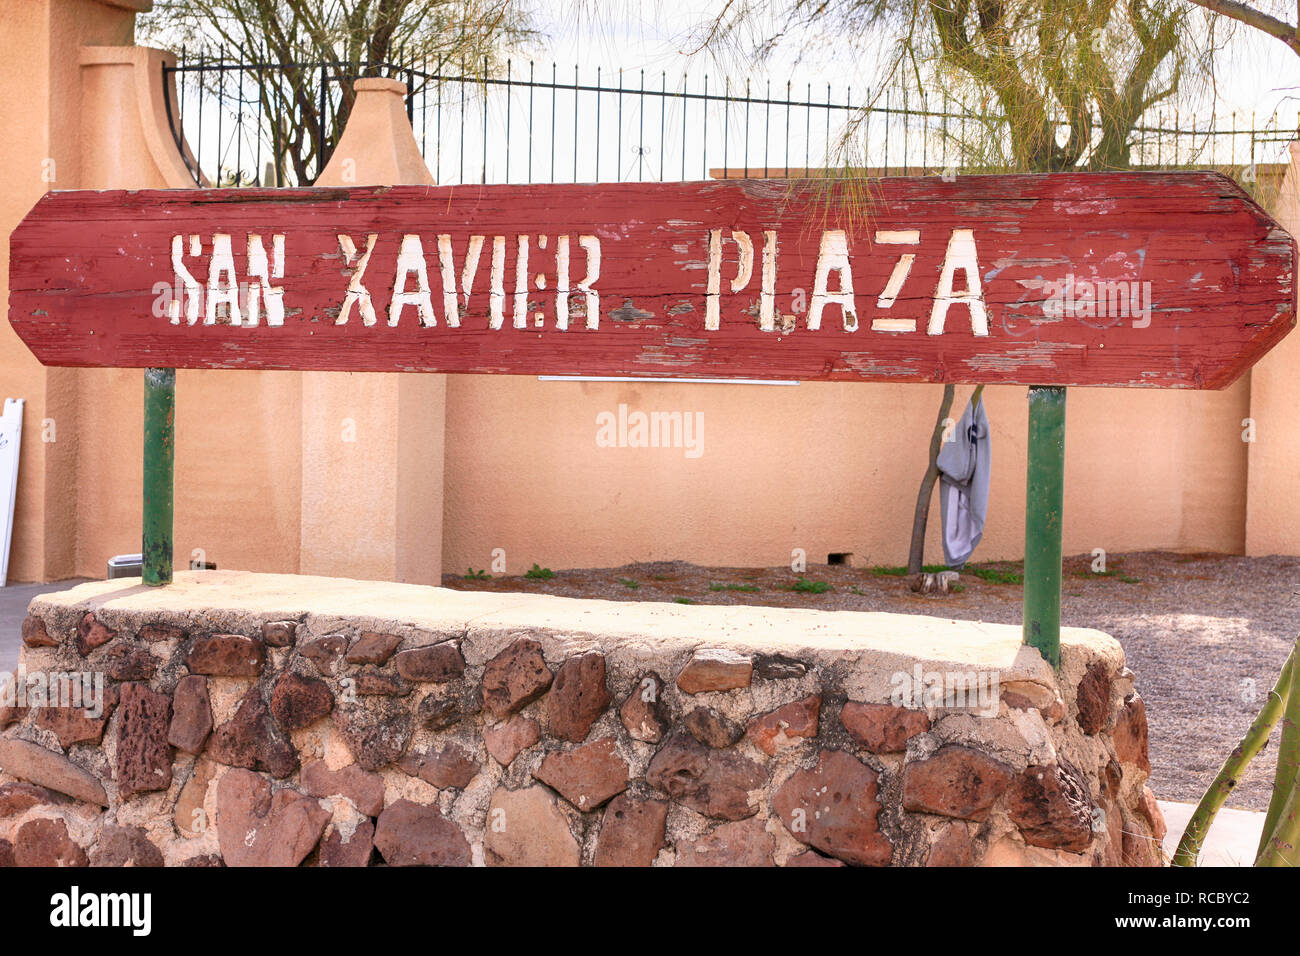 San Xavier Plaza sign outside the Native American Arts and Crafts store area in Tucson AZ - Stock Image